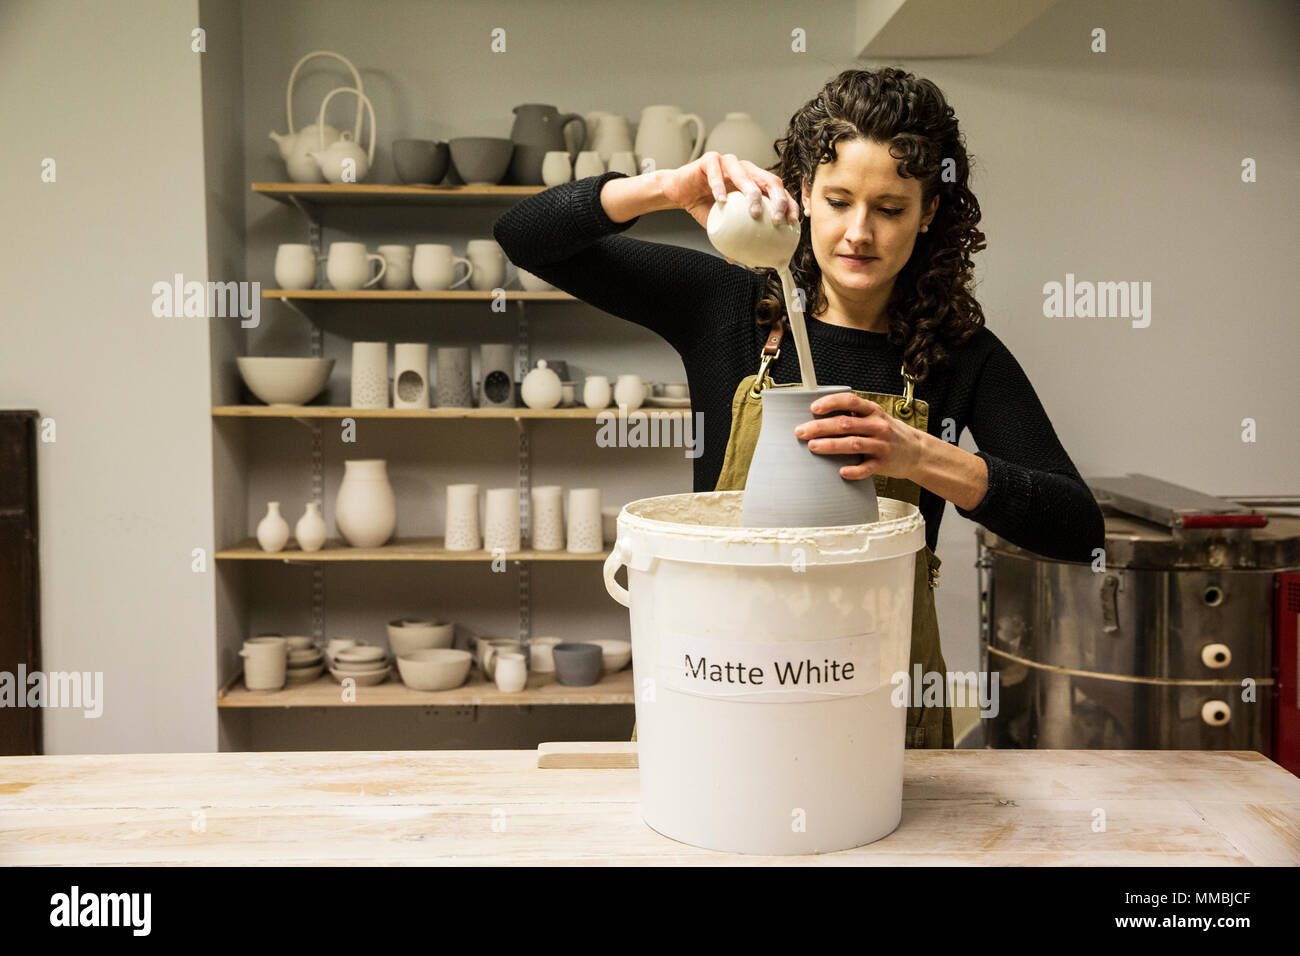 Woman with curly brown hair wearing apron standing in pottery workshop, pouring white glaze over unfired vase. - Stock Image